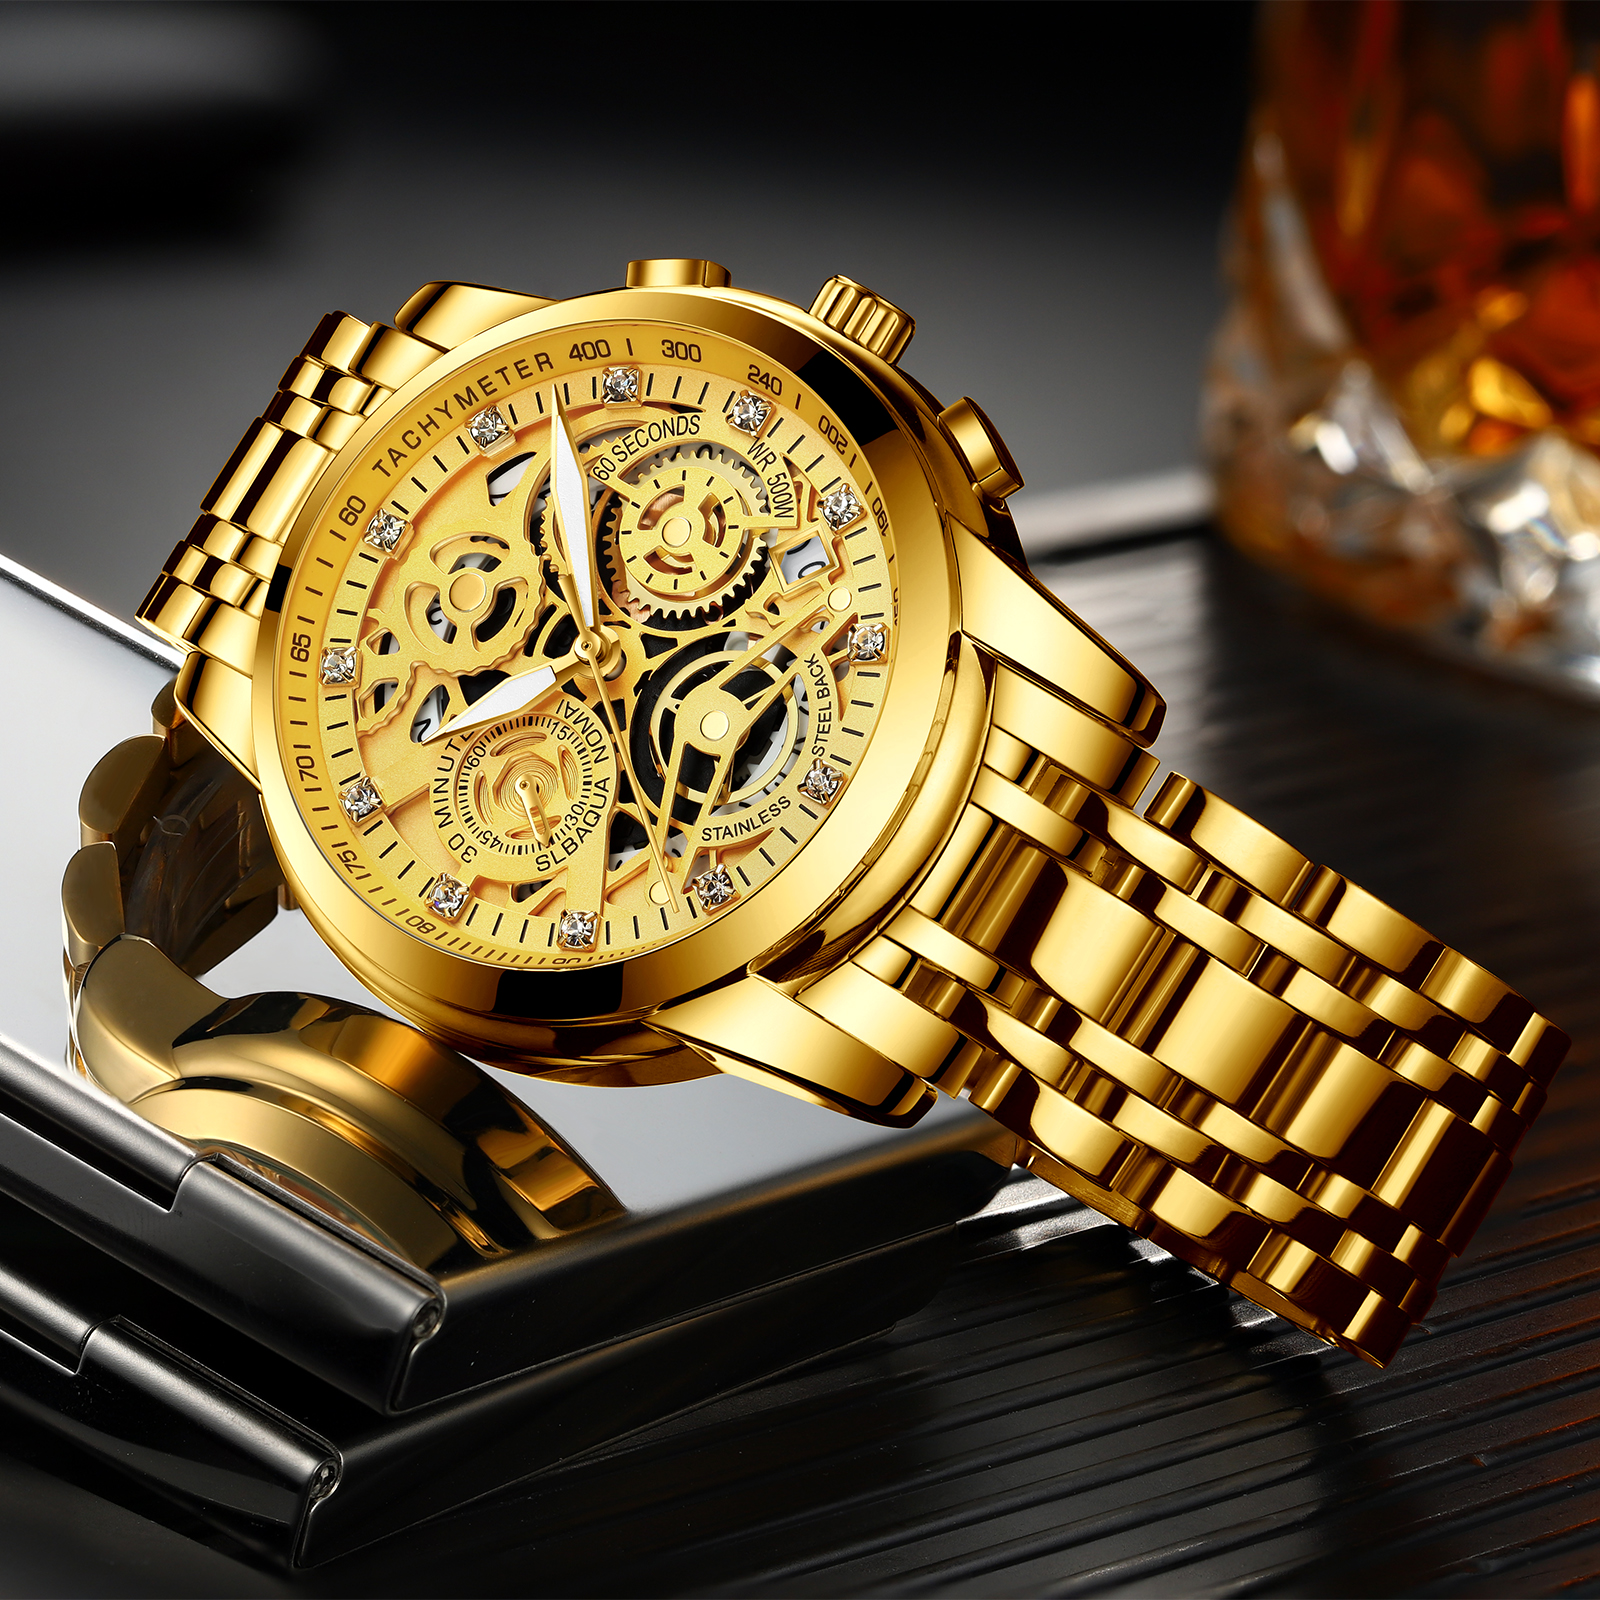 NEKTOM Wrist Watches Men Top Brand Luxury Golden Chronograph Mens Watch Gold Big Dial Man Wristwatch Relogio Masculino